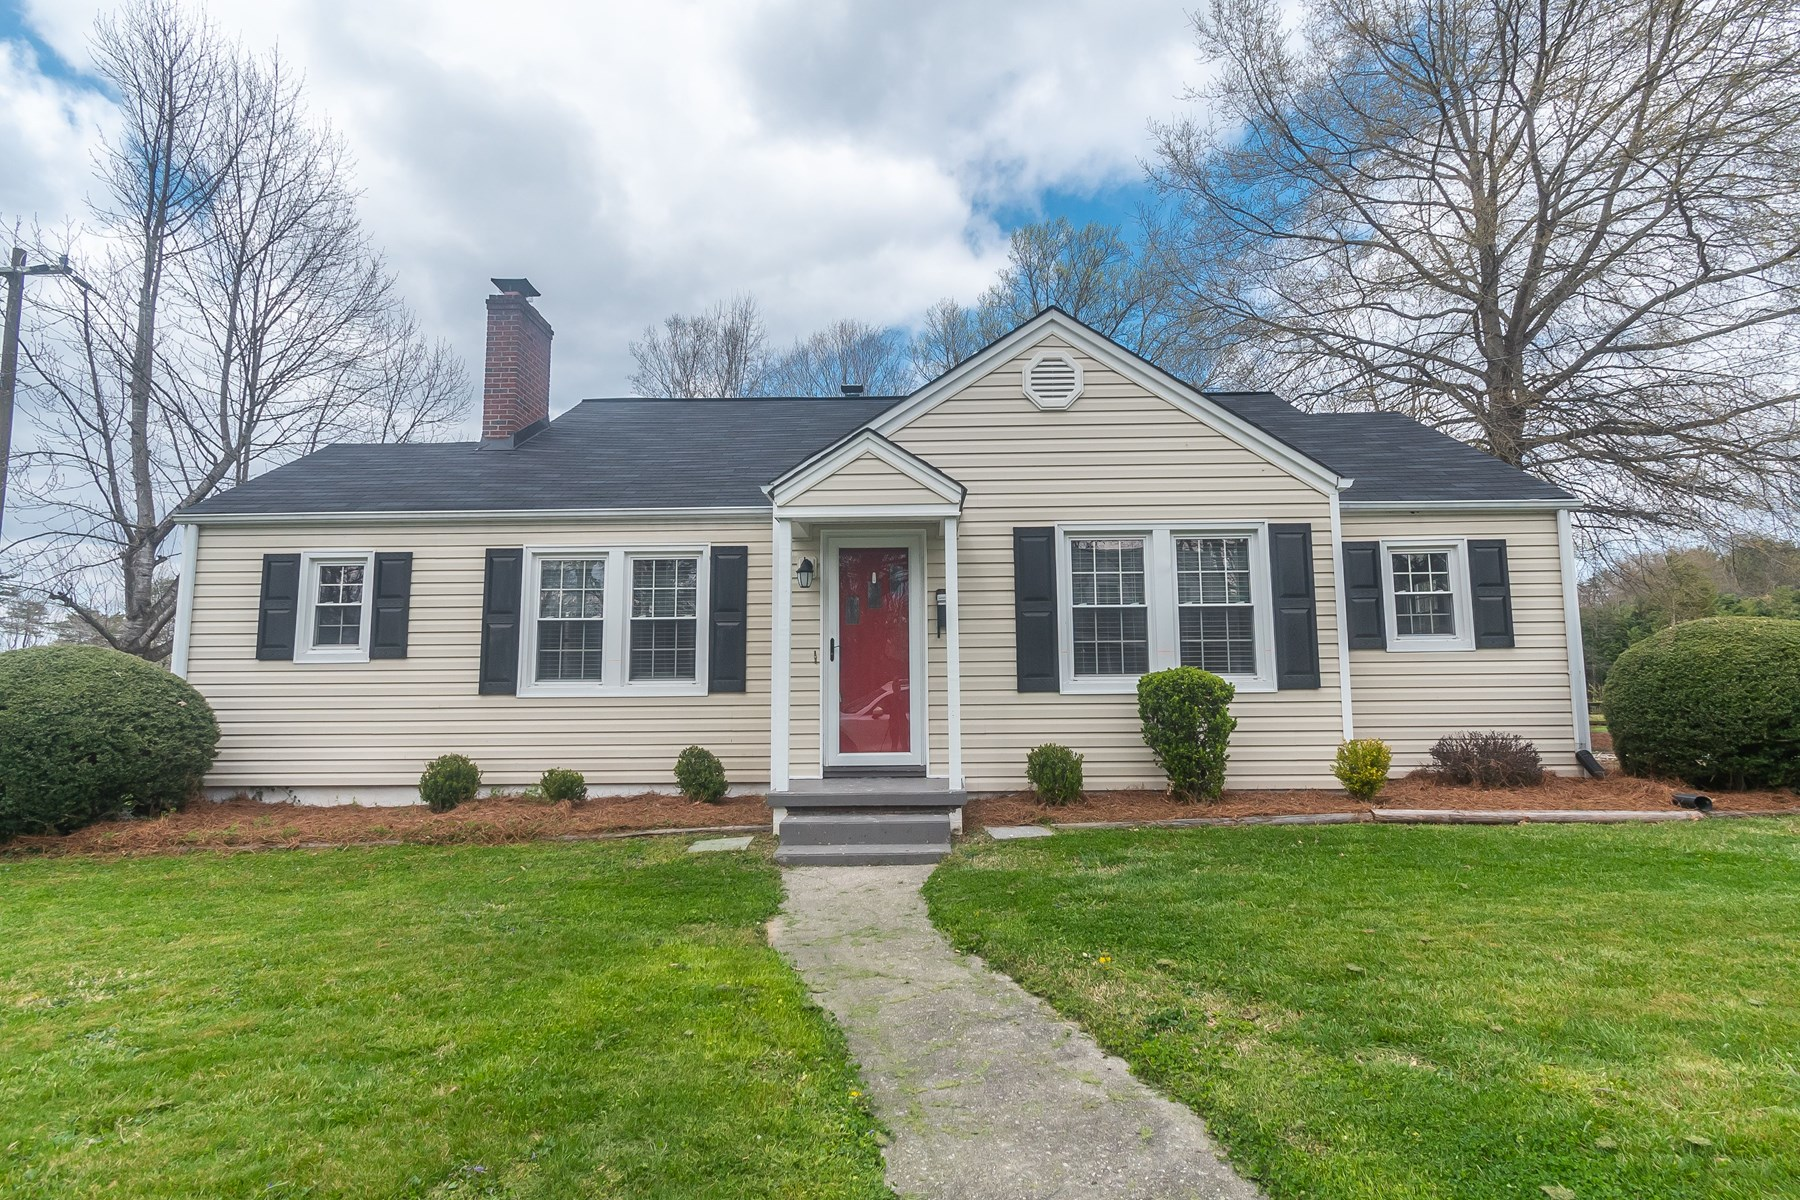 Home For Sale Mount Airy North Carolina 27030